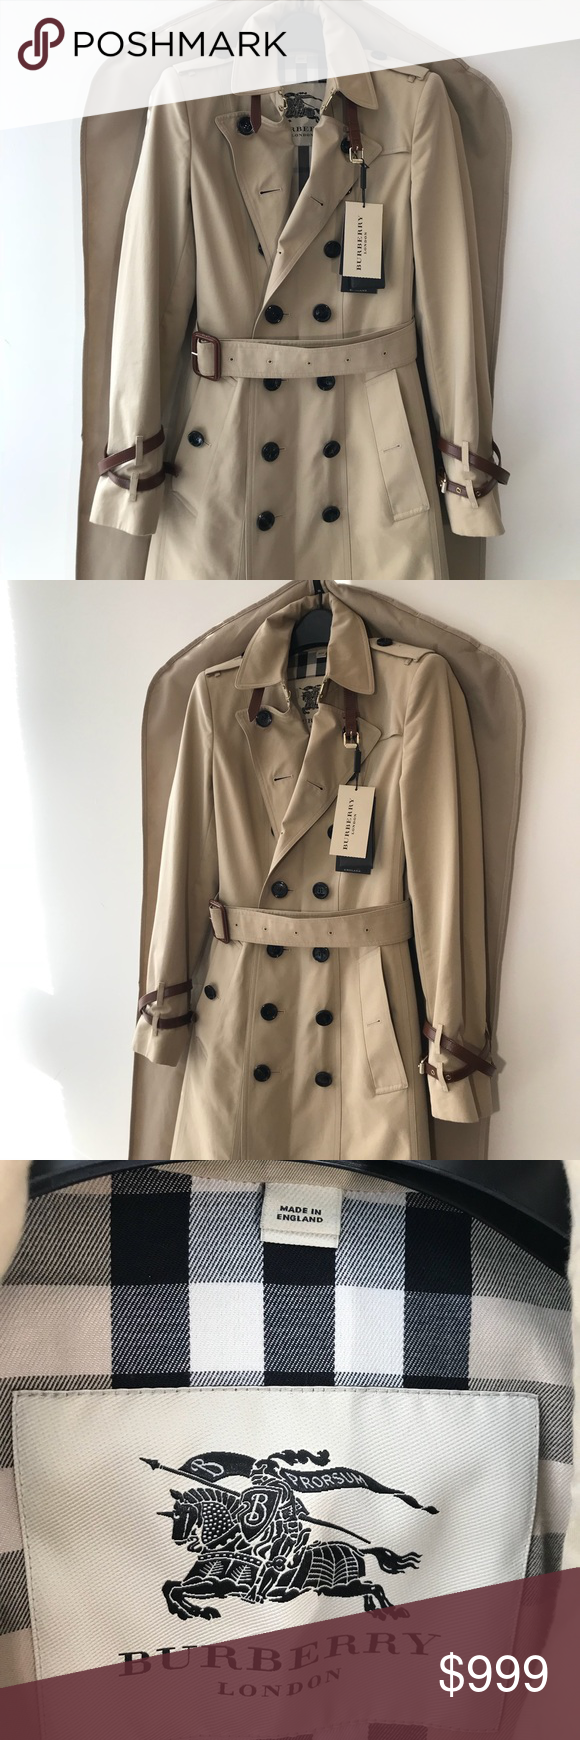 Burberry Trench Coat Used 2 Times Like New Burberry Jackets Coats Trench Coats Trench Coat Burberry Trench Coat Burberry Trench